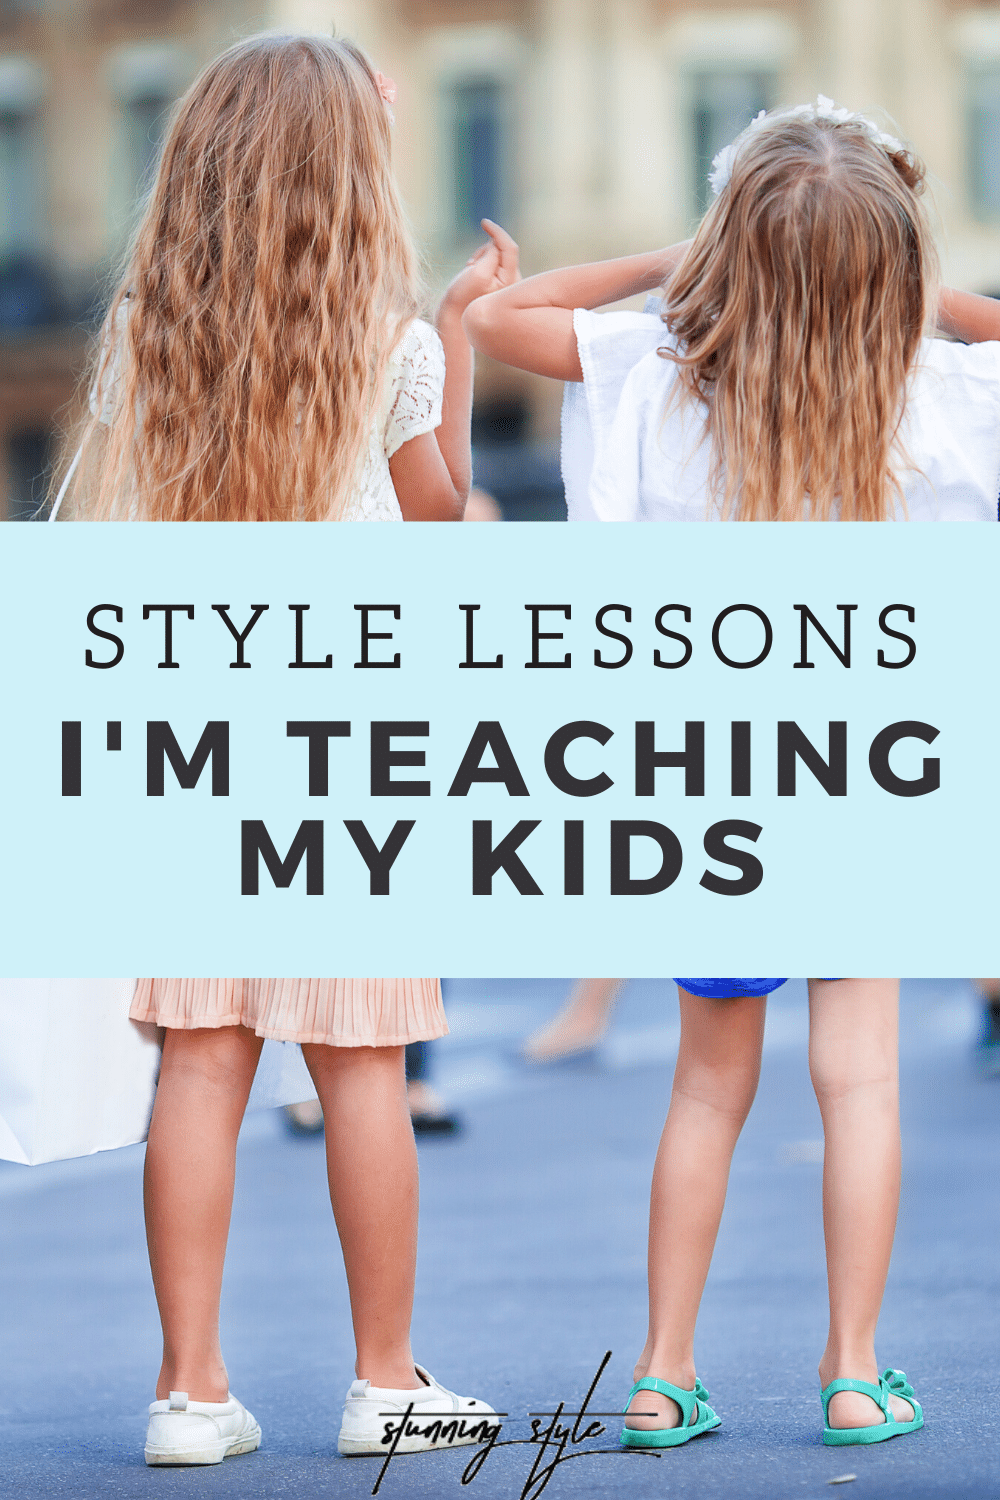 Style Lessons I'm Teaching My Kids